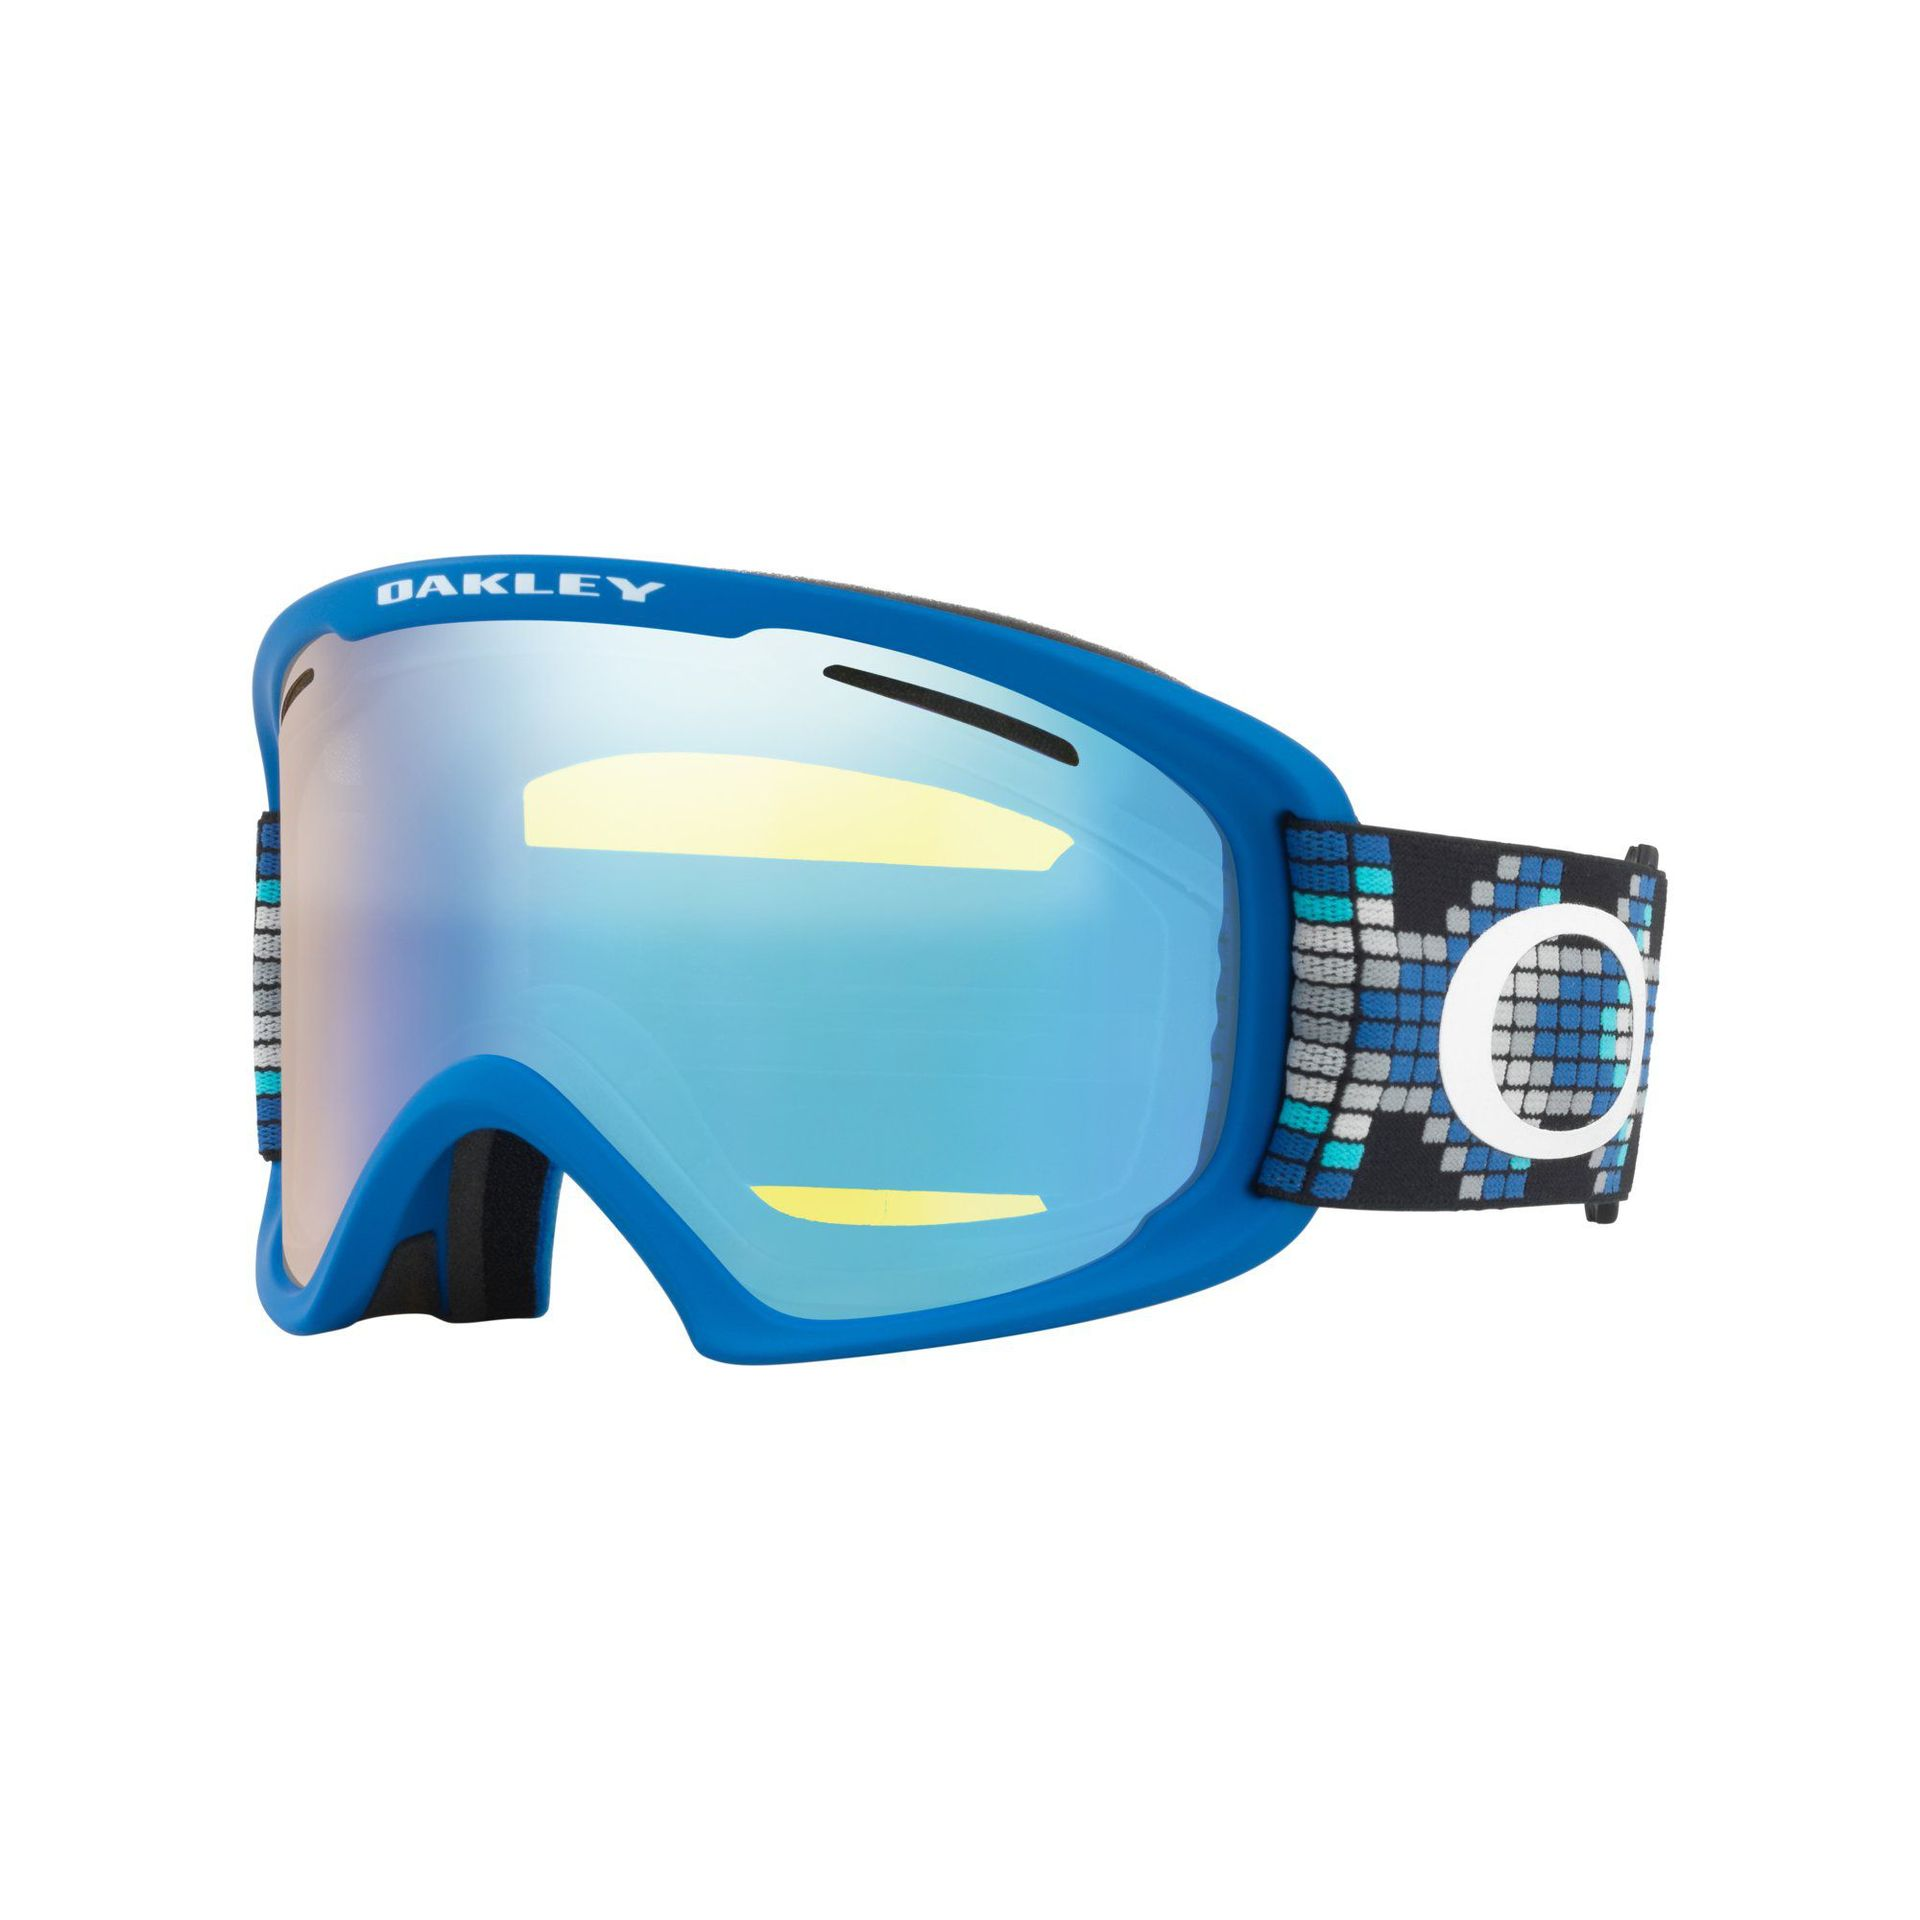 GOGLE OAKLEY O FRAME 2.0 XL DIGI SNAKE IRON BLUE|HIGH INTENSITY YELLOW